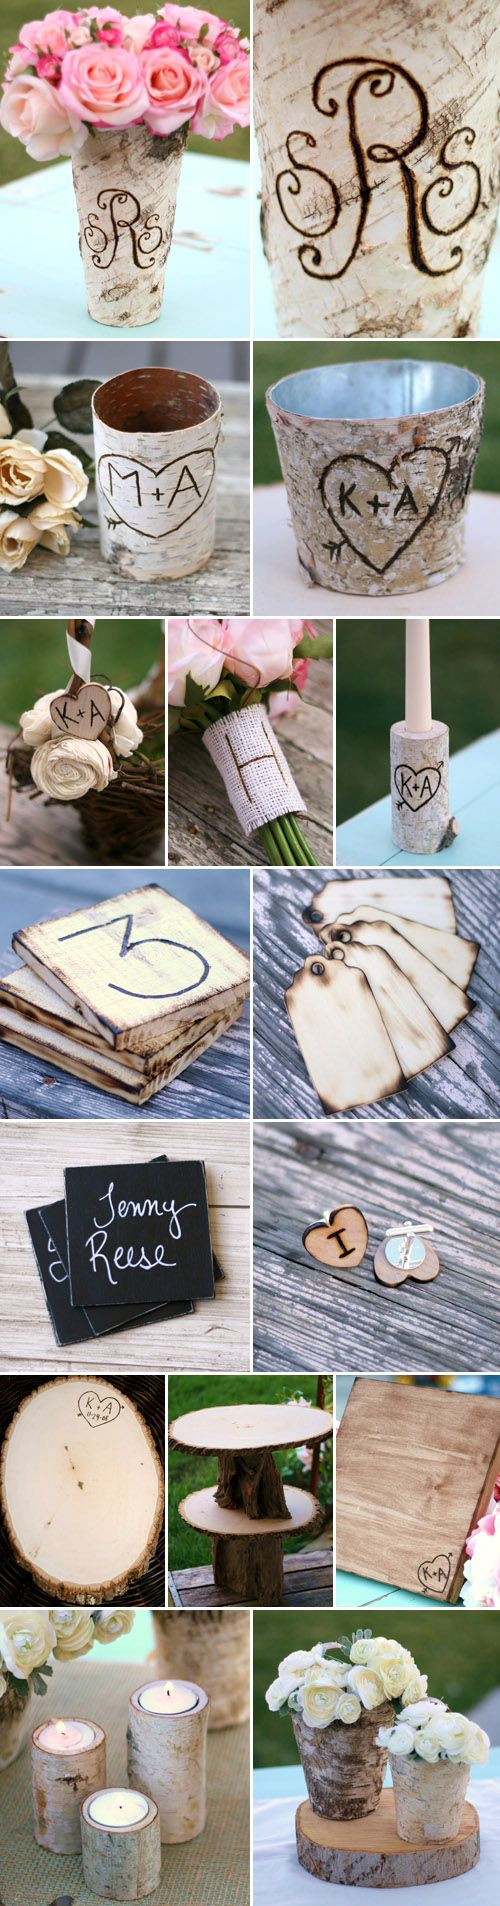 best ideas for your dream day images on pinterest marriage